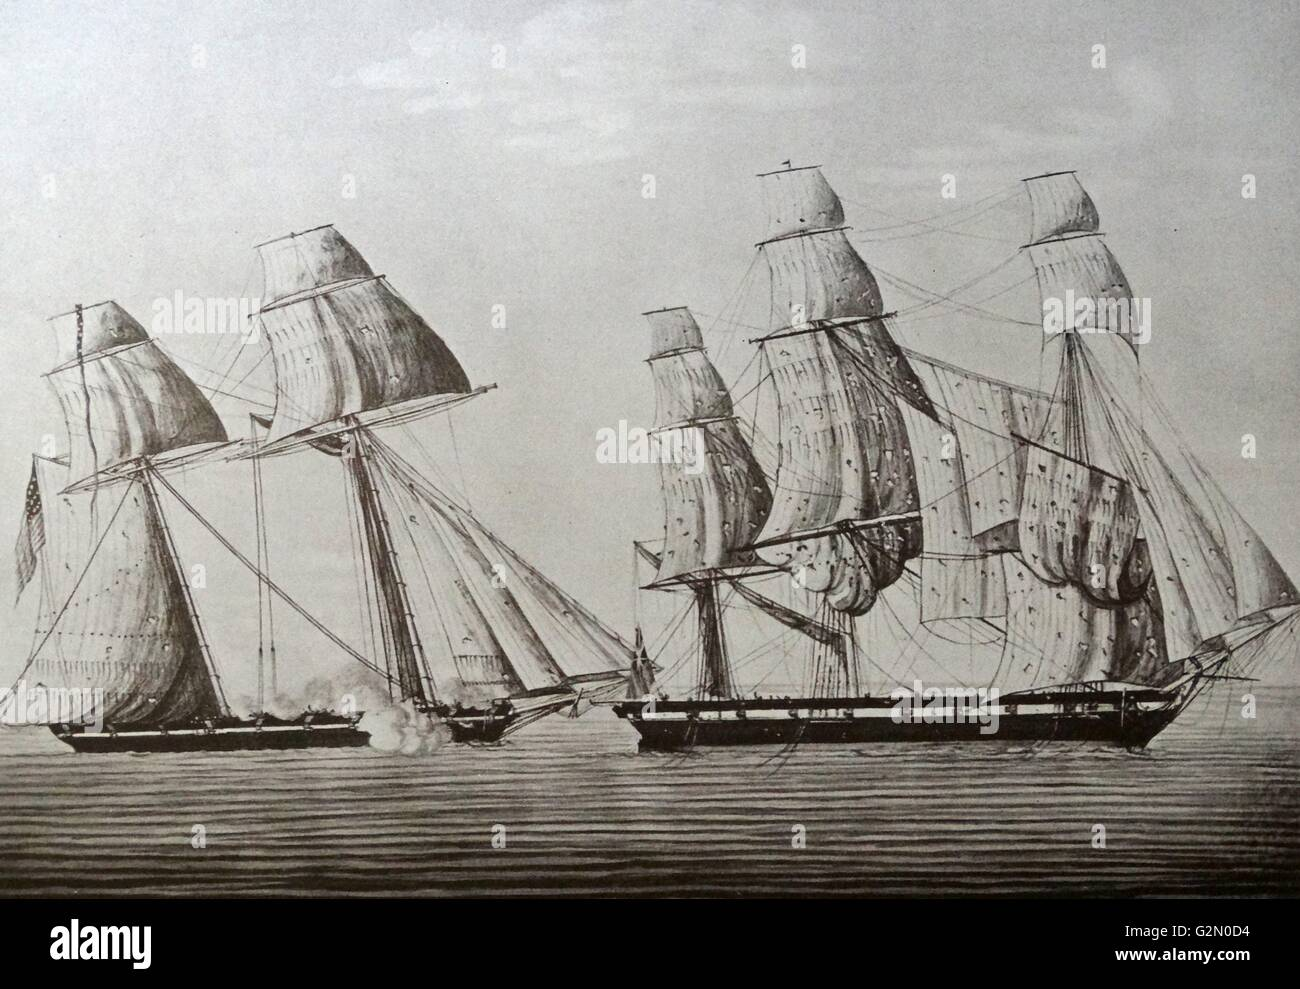 The American pirate ship 'The Surprise' capturing the Royal Navy ship 'the star' - Stock Image